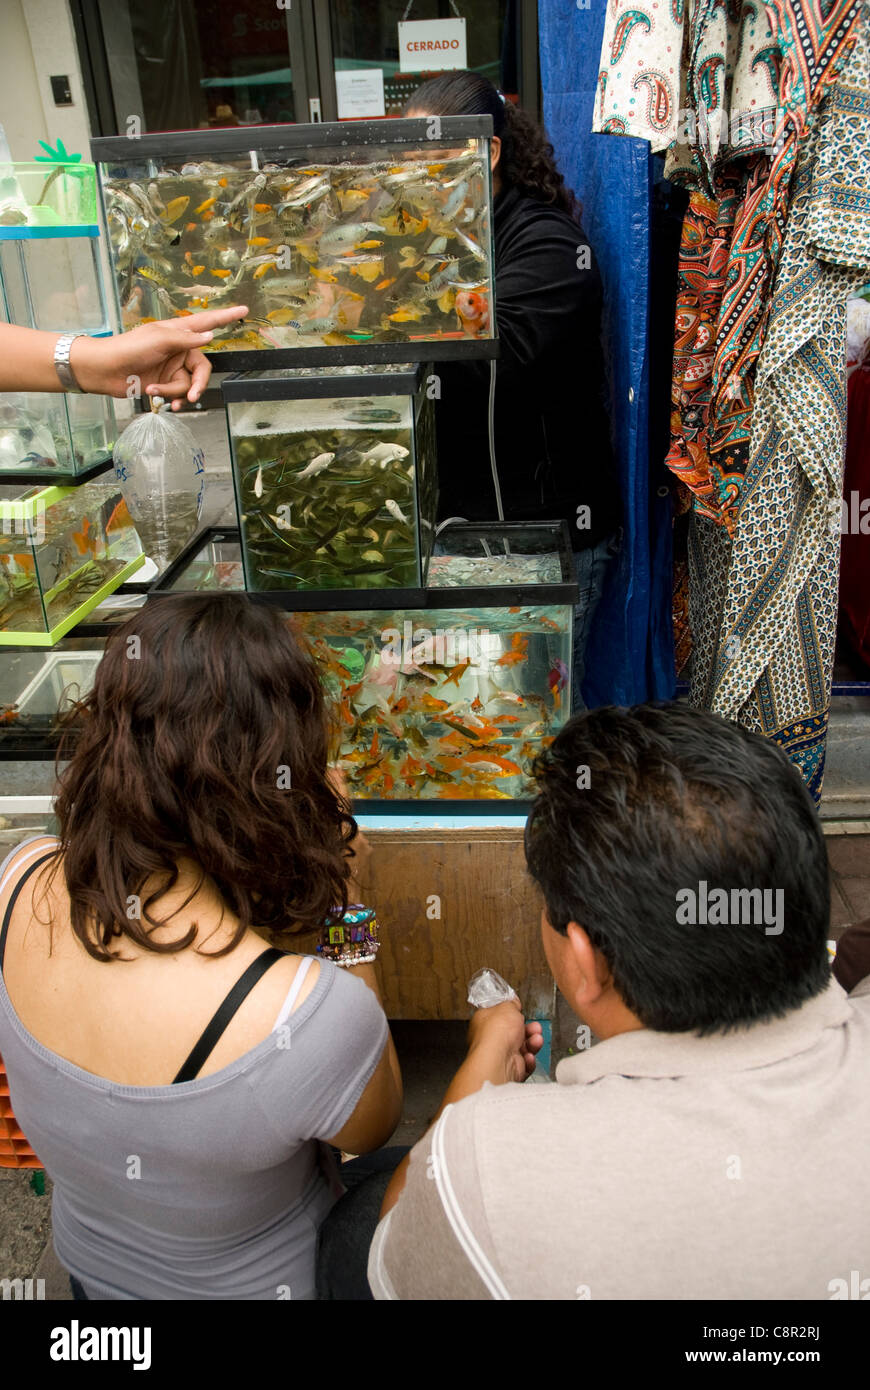 Fish tanks at mexican fare. - Stock Image